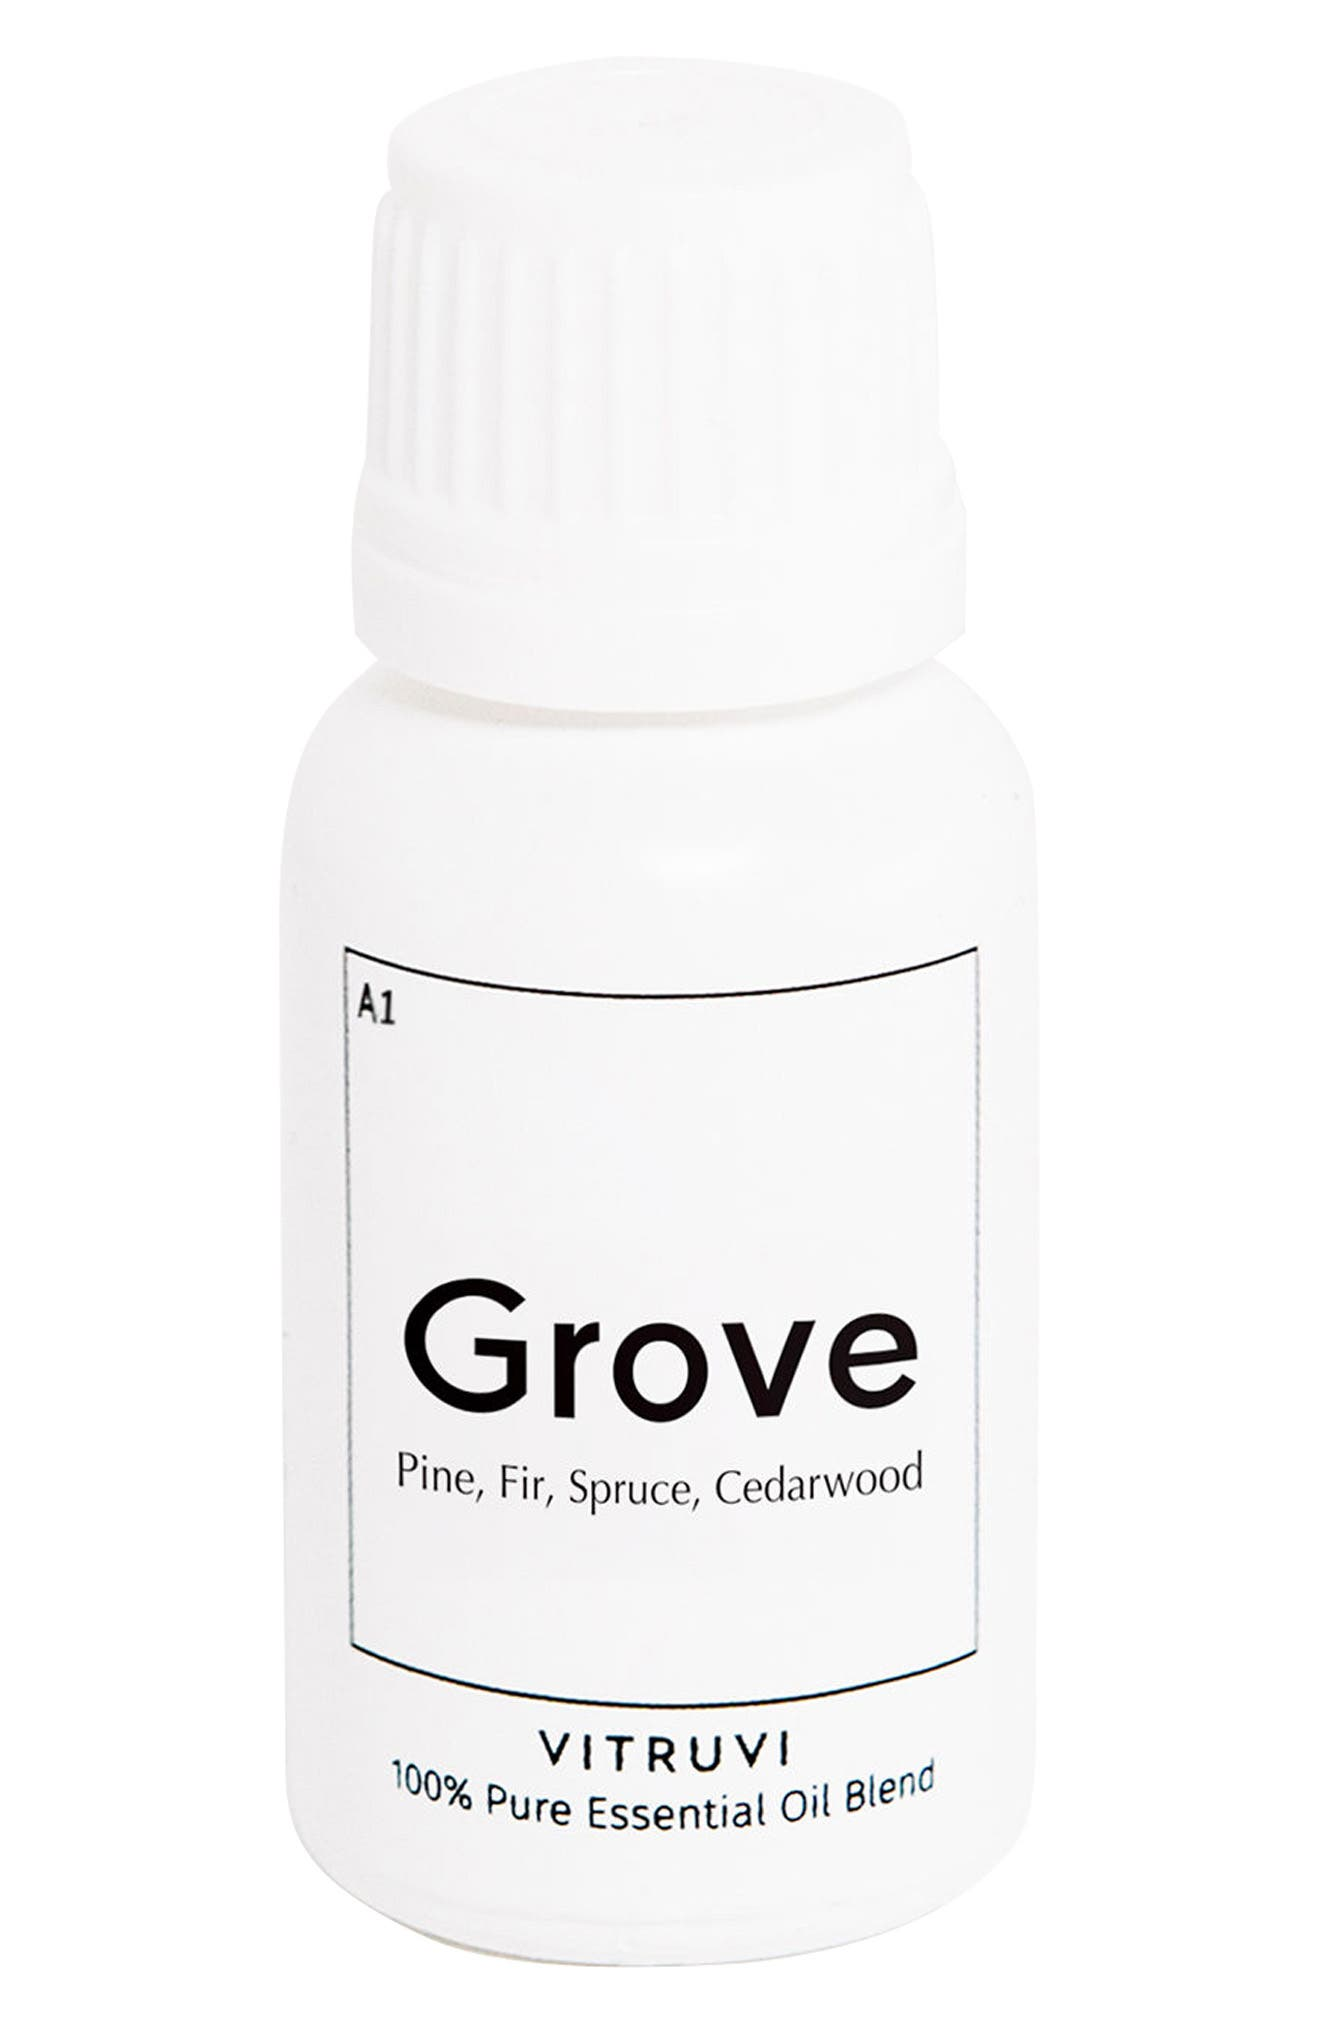 Vitruvi Grove Blend Essential Oil